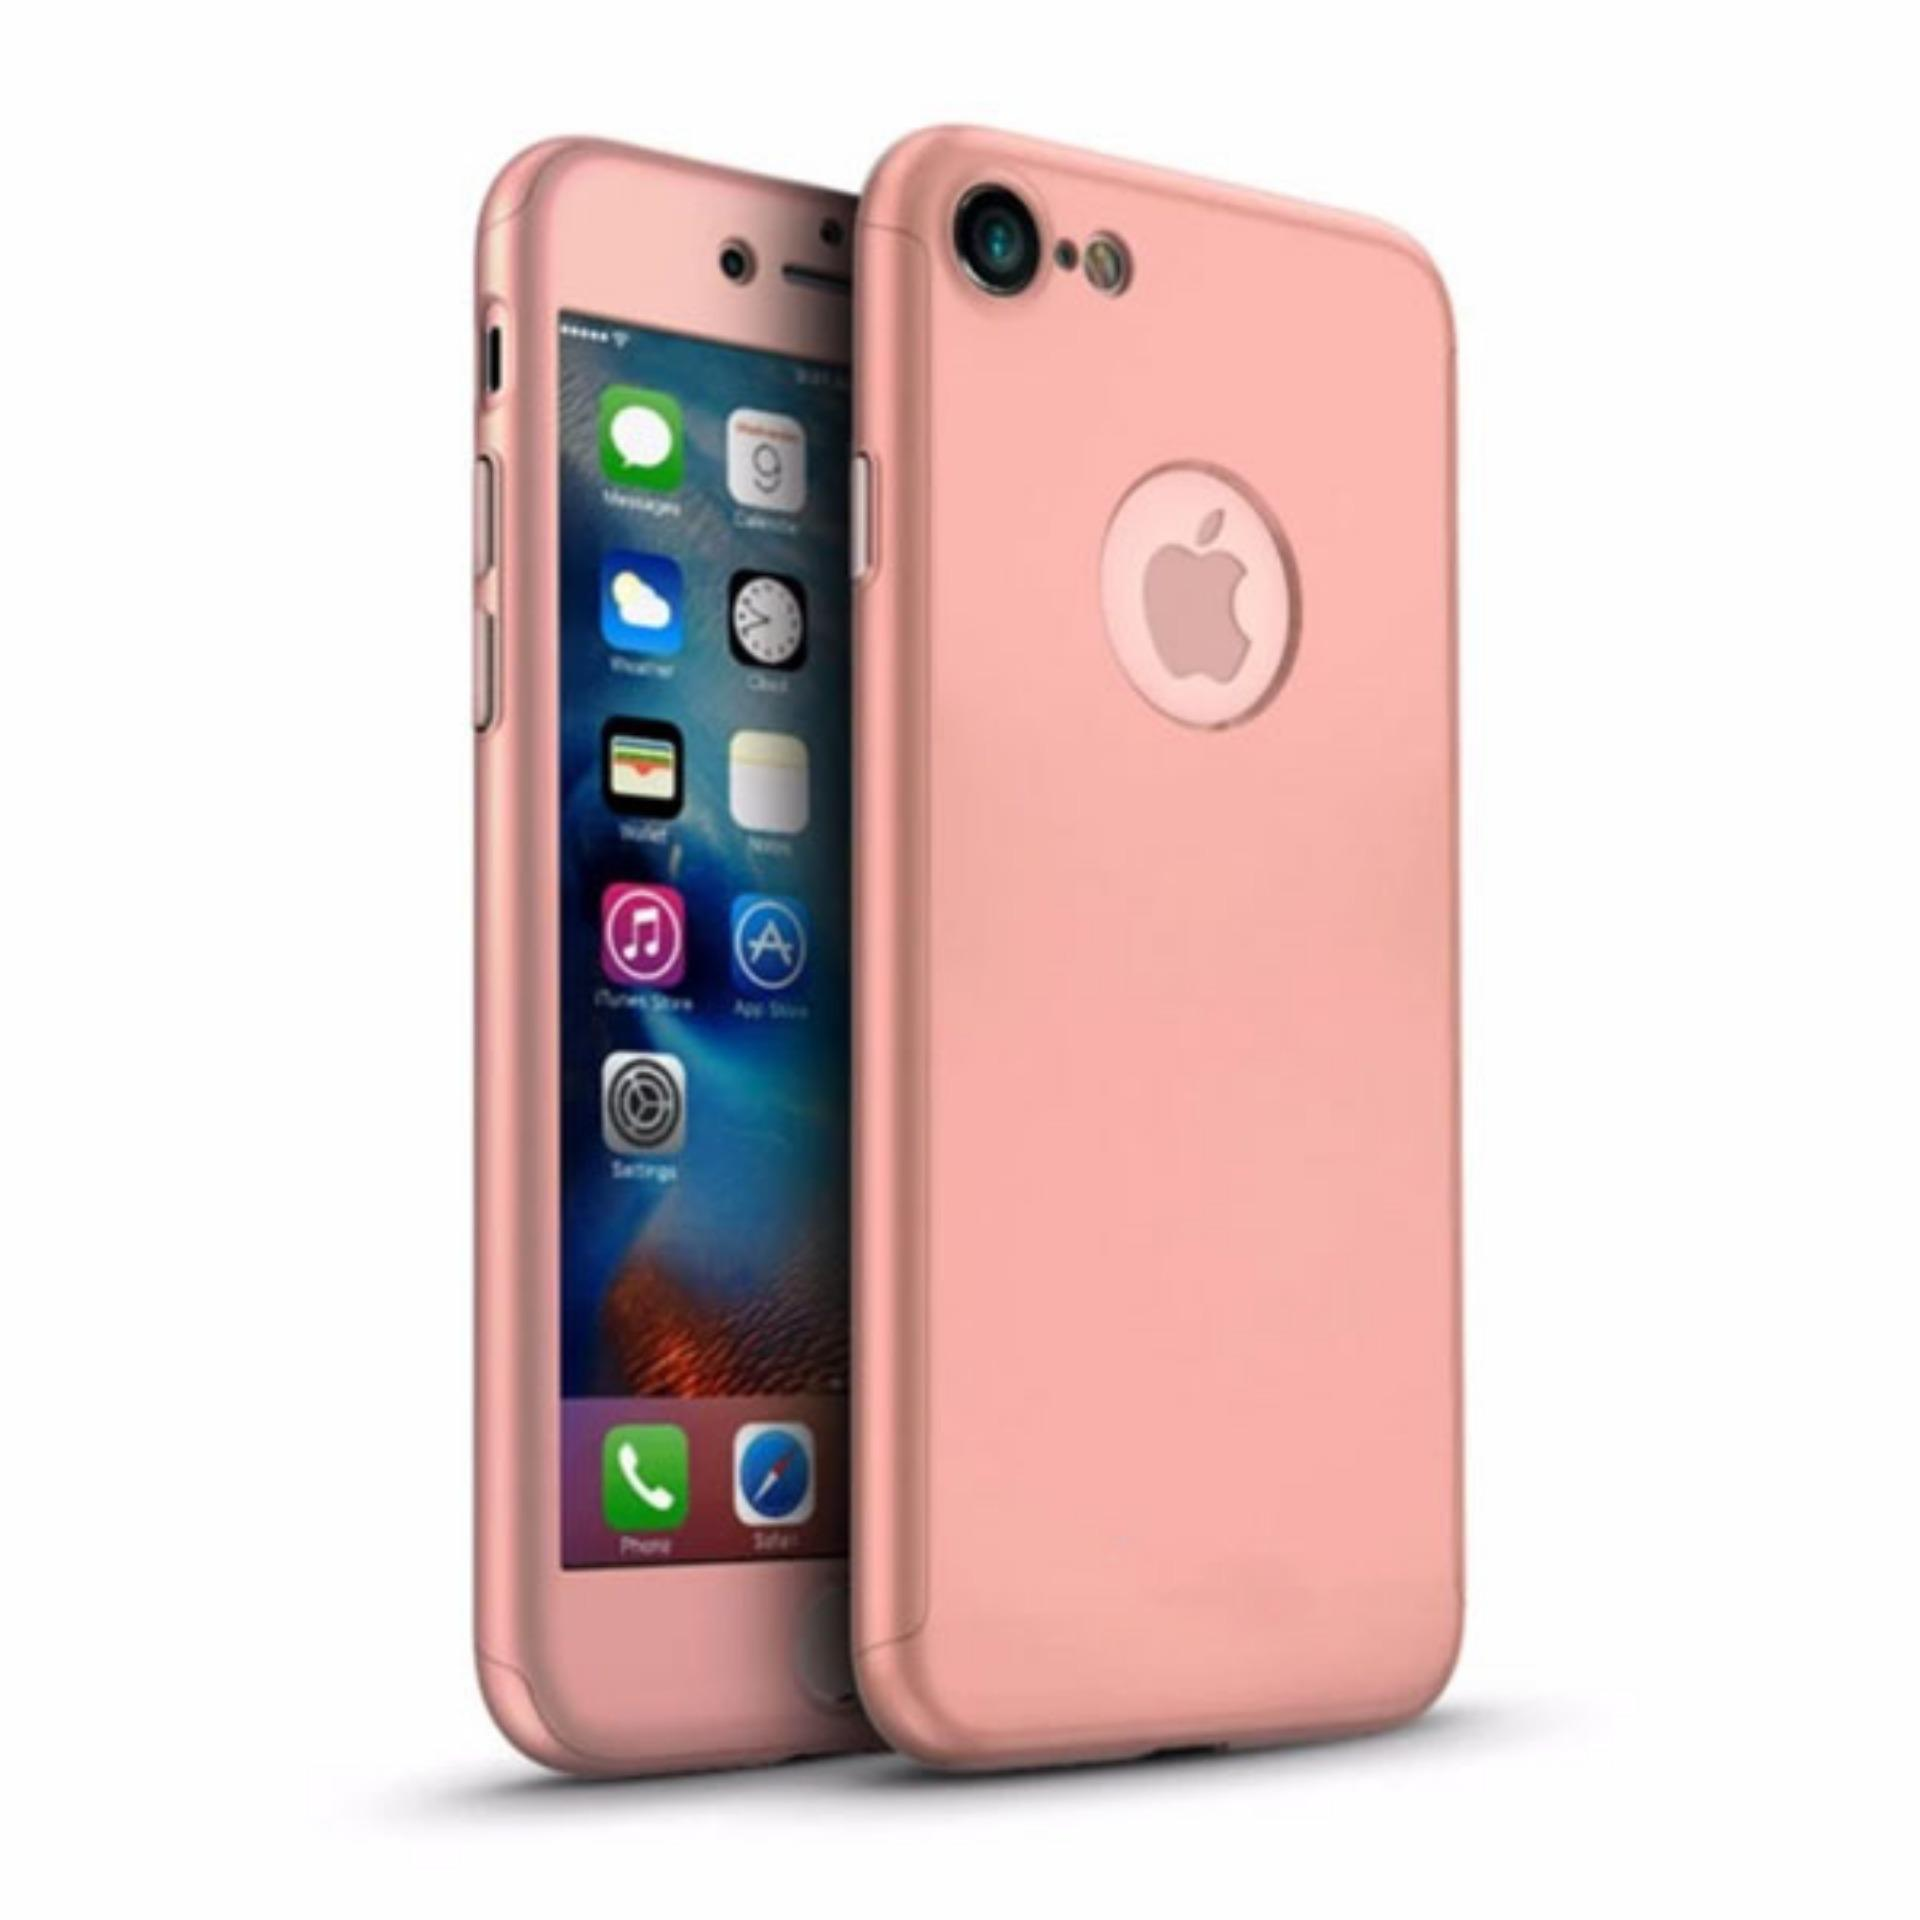 LOLLYPOP TPU 360 Case Apple iPhone 6 Plus / 6s Plus Rose Gold Emas Merah Muda Full Protection Cover Case Full Body Case Hp Casing Handphone